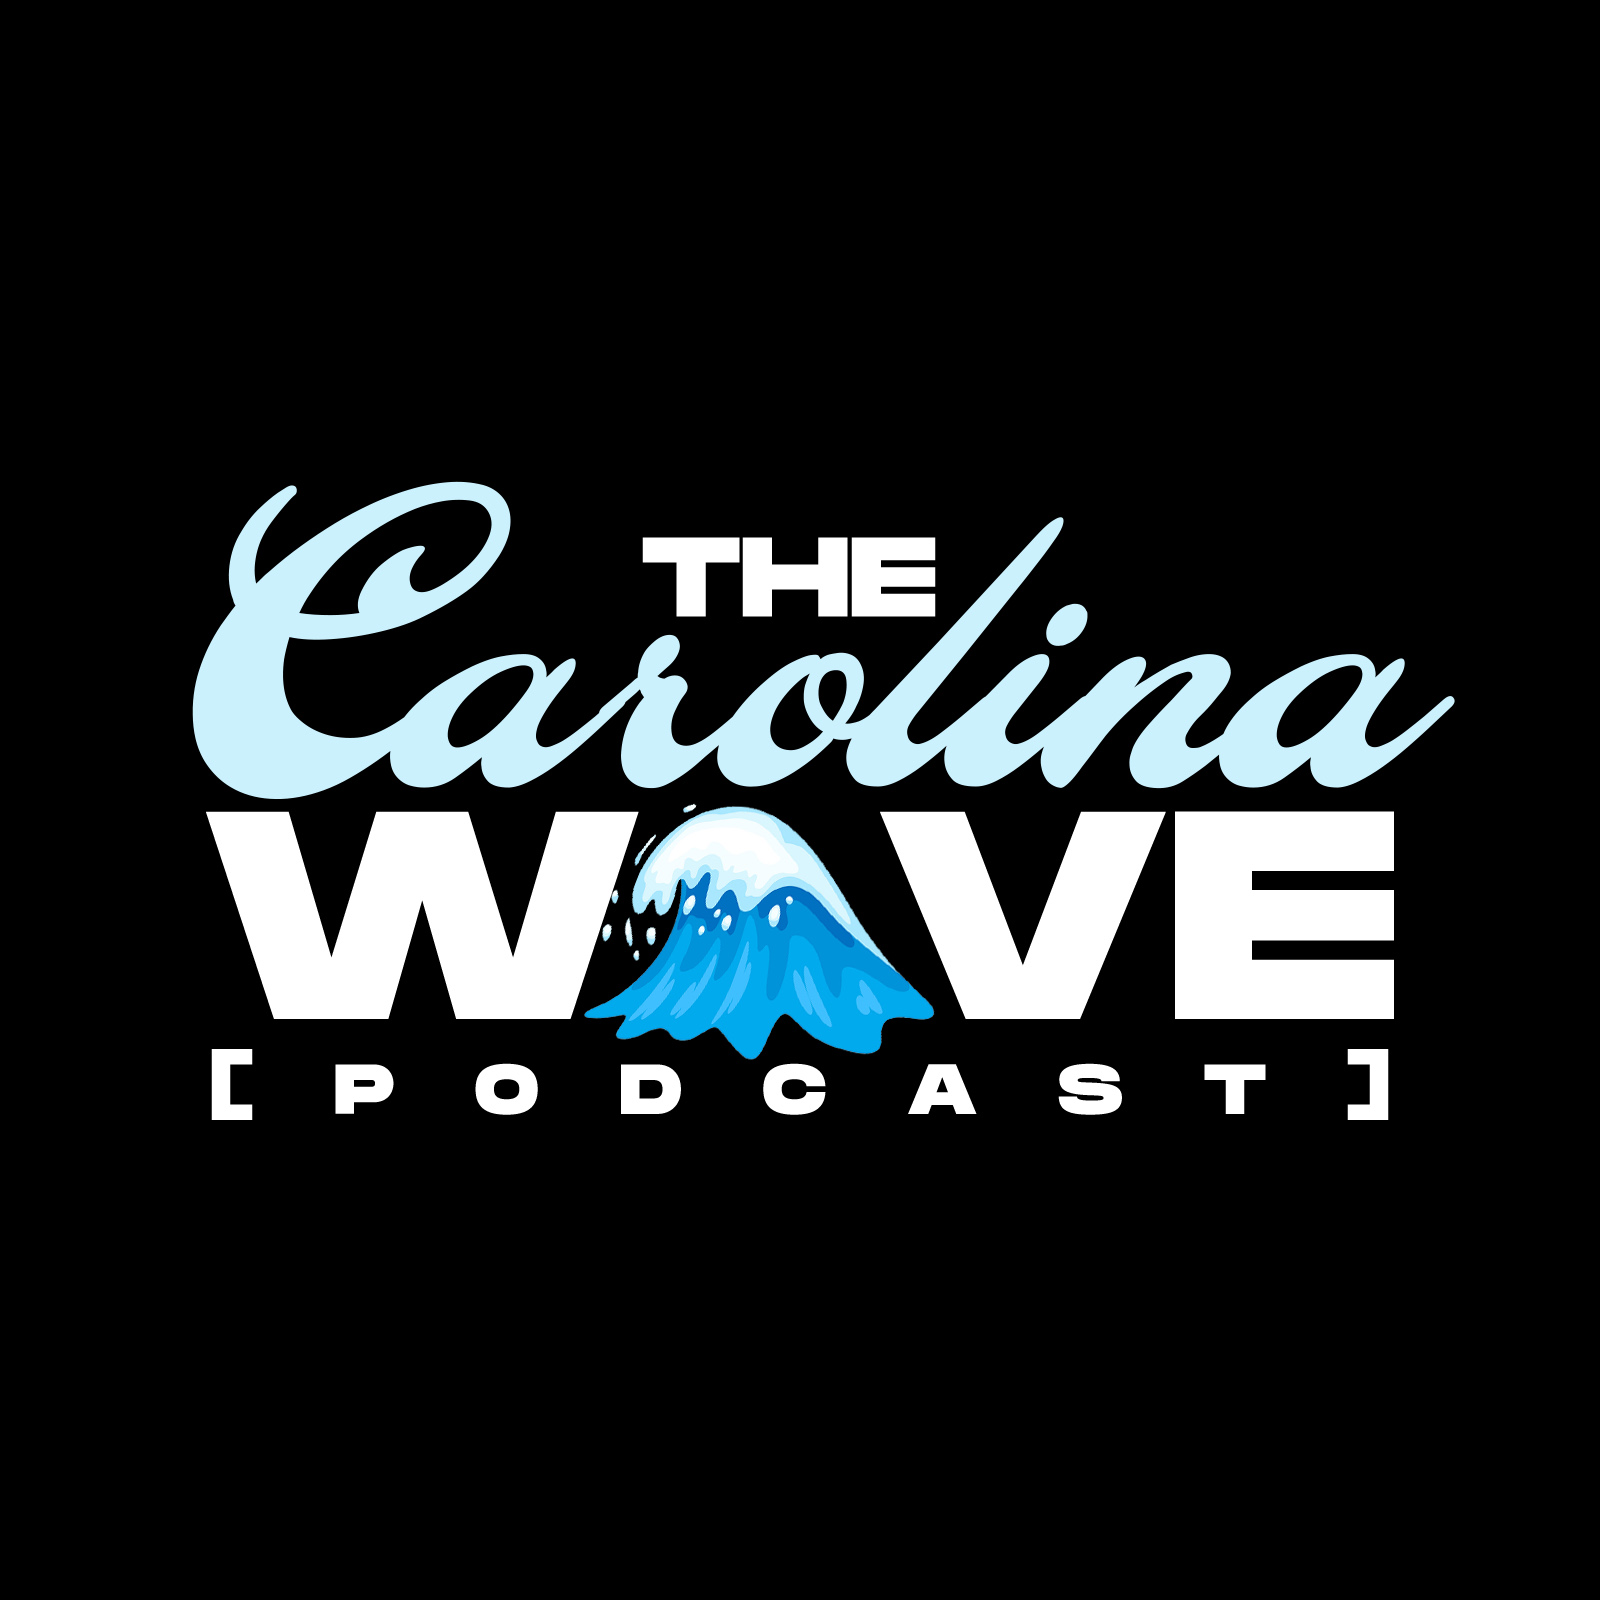 The Carolina Wave Podcast